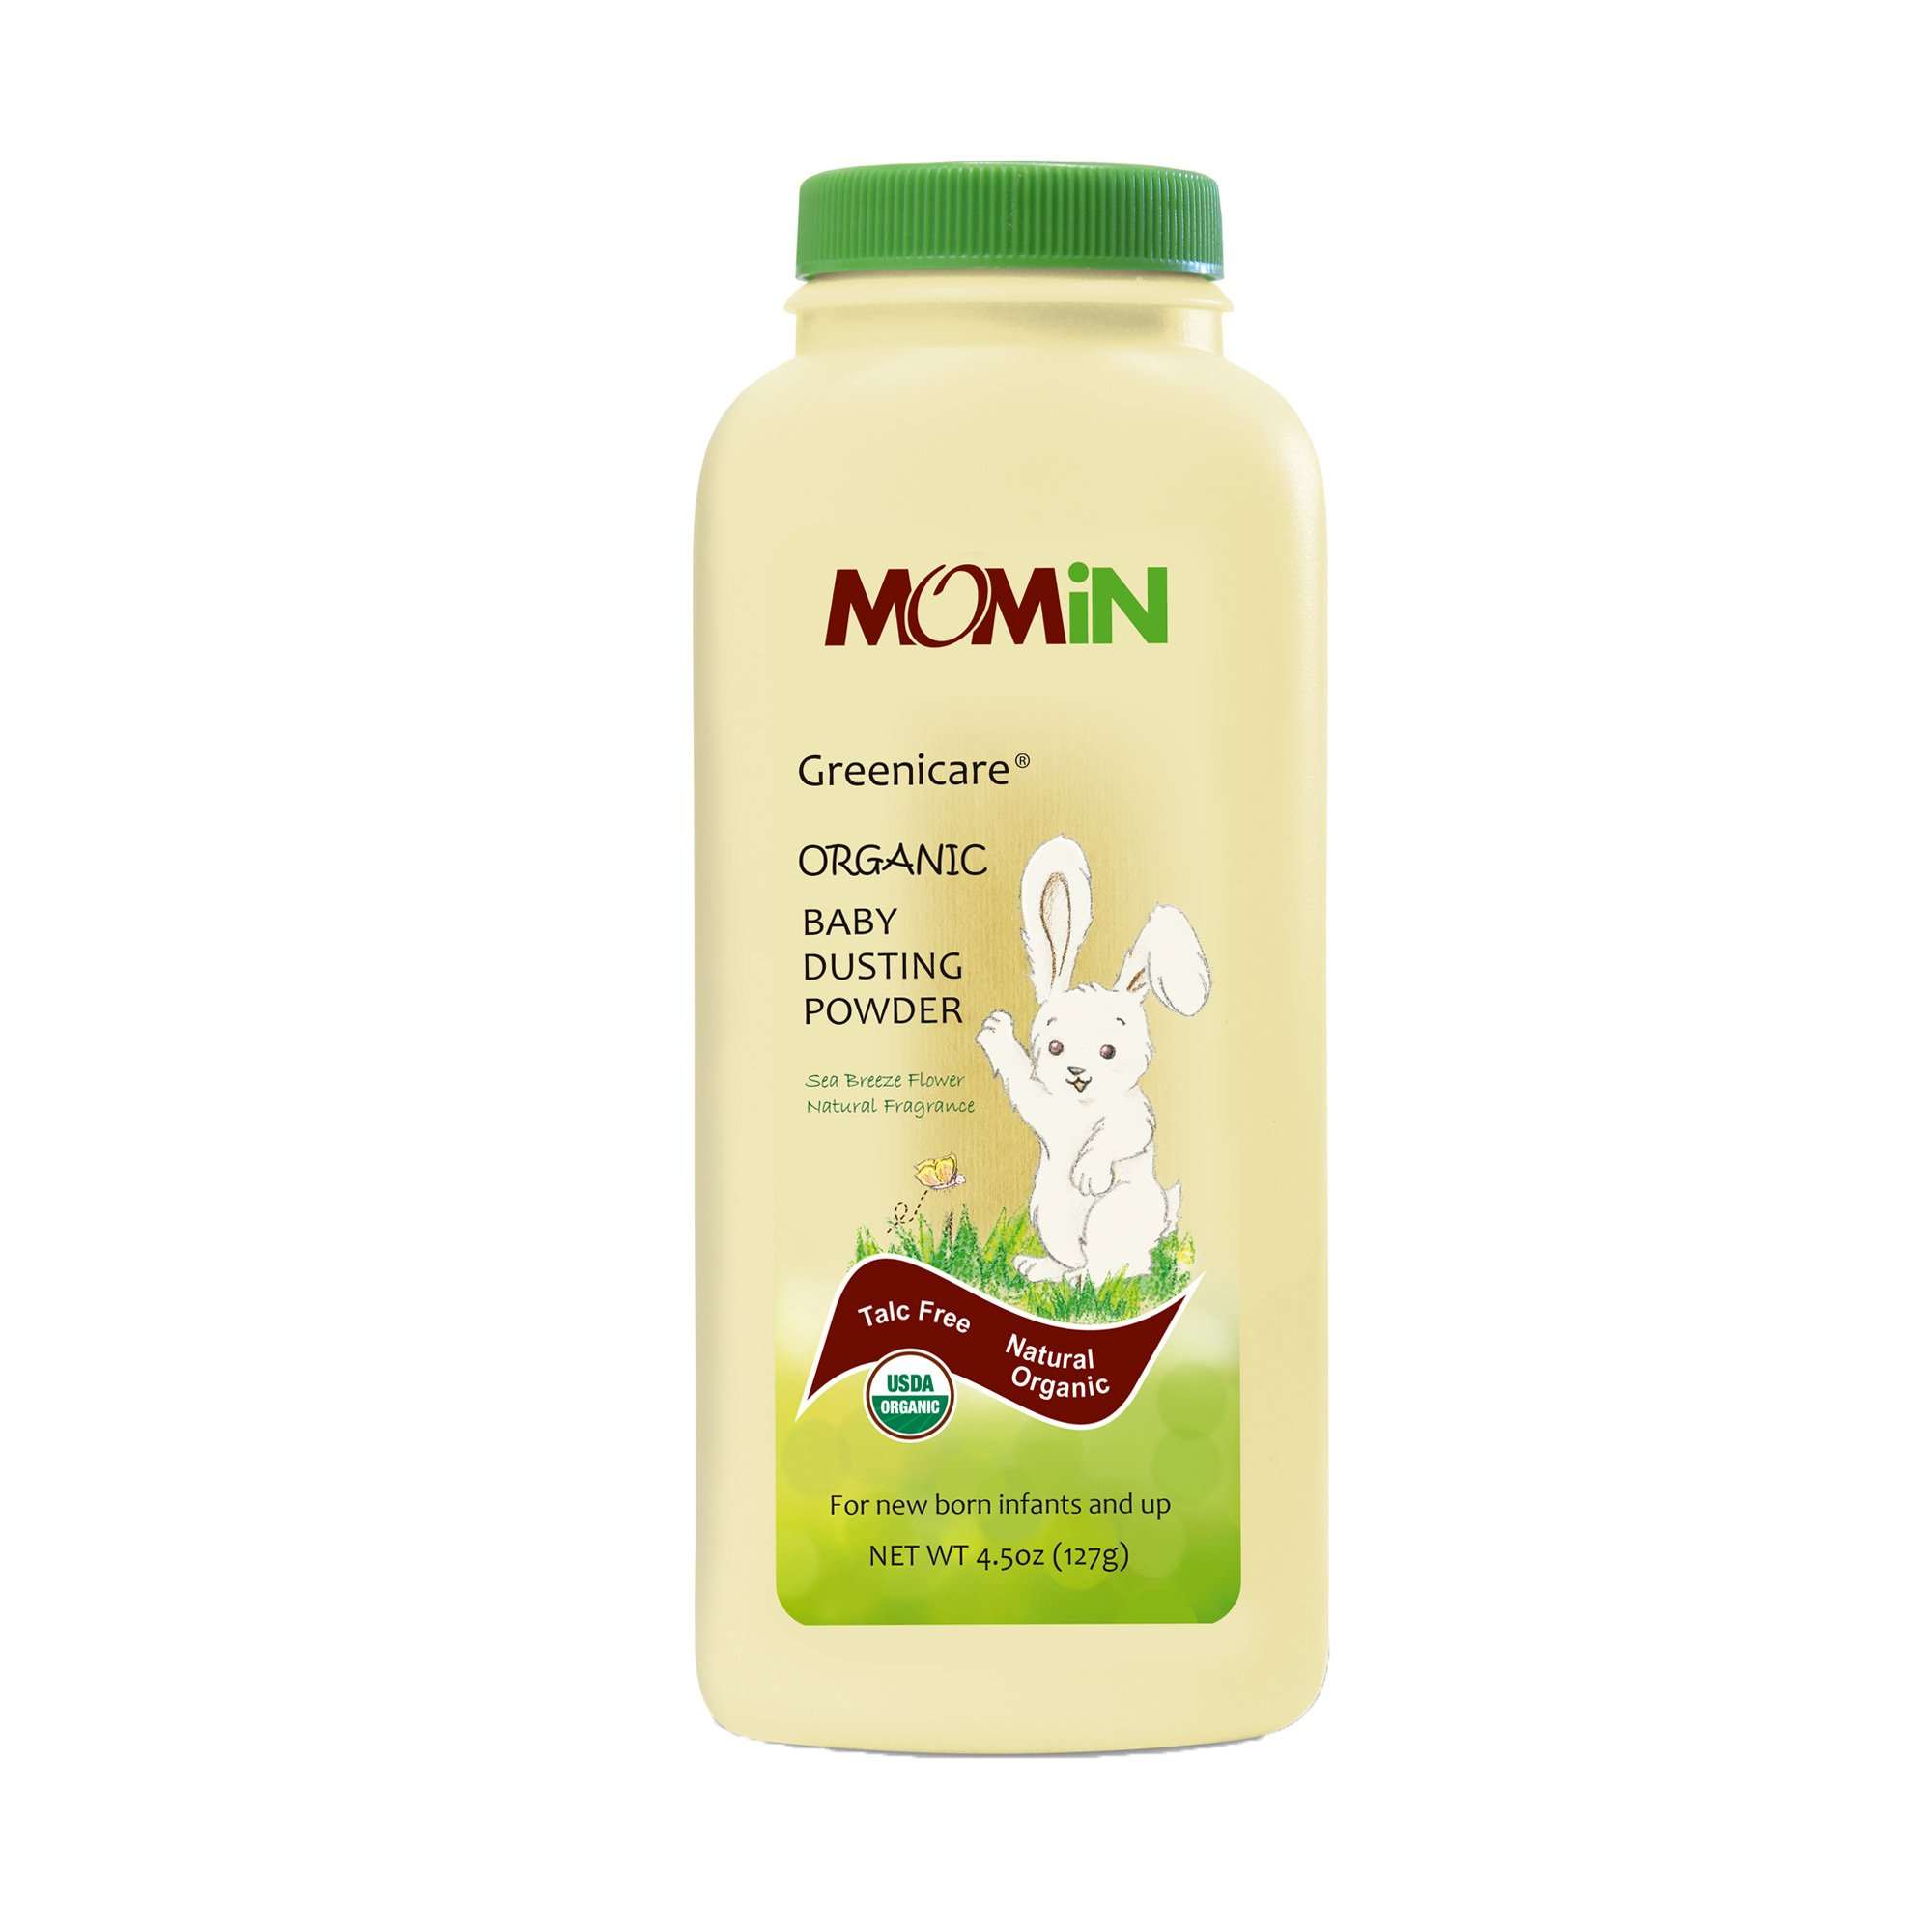 MOMiN USDA Organic Baby Dusting Powder, Talc-Free, with Calendula Extract & Vitamin E, 4.5 Oz by MOMiN